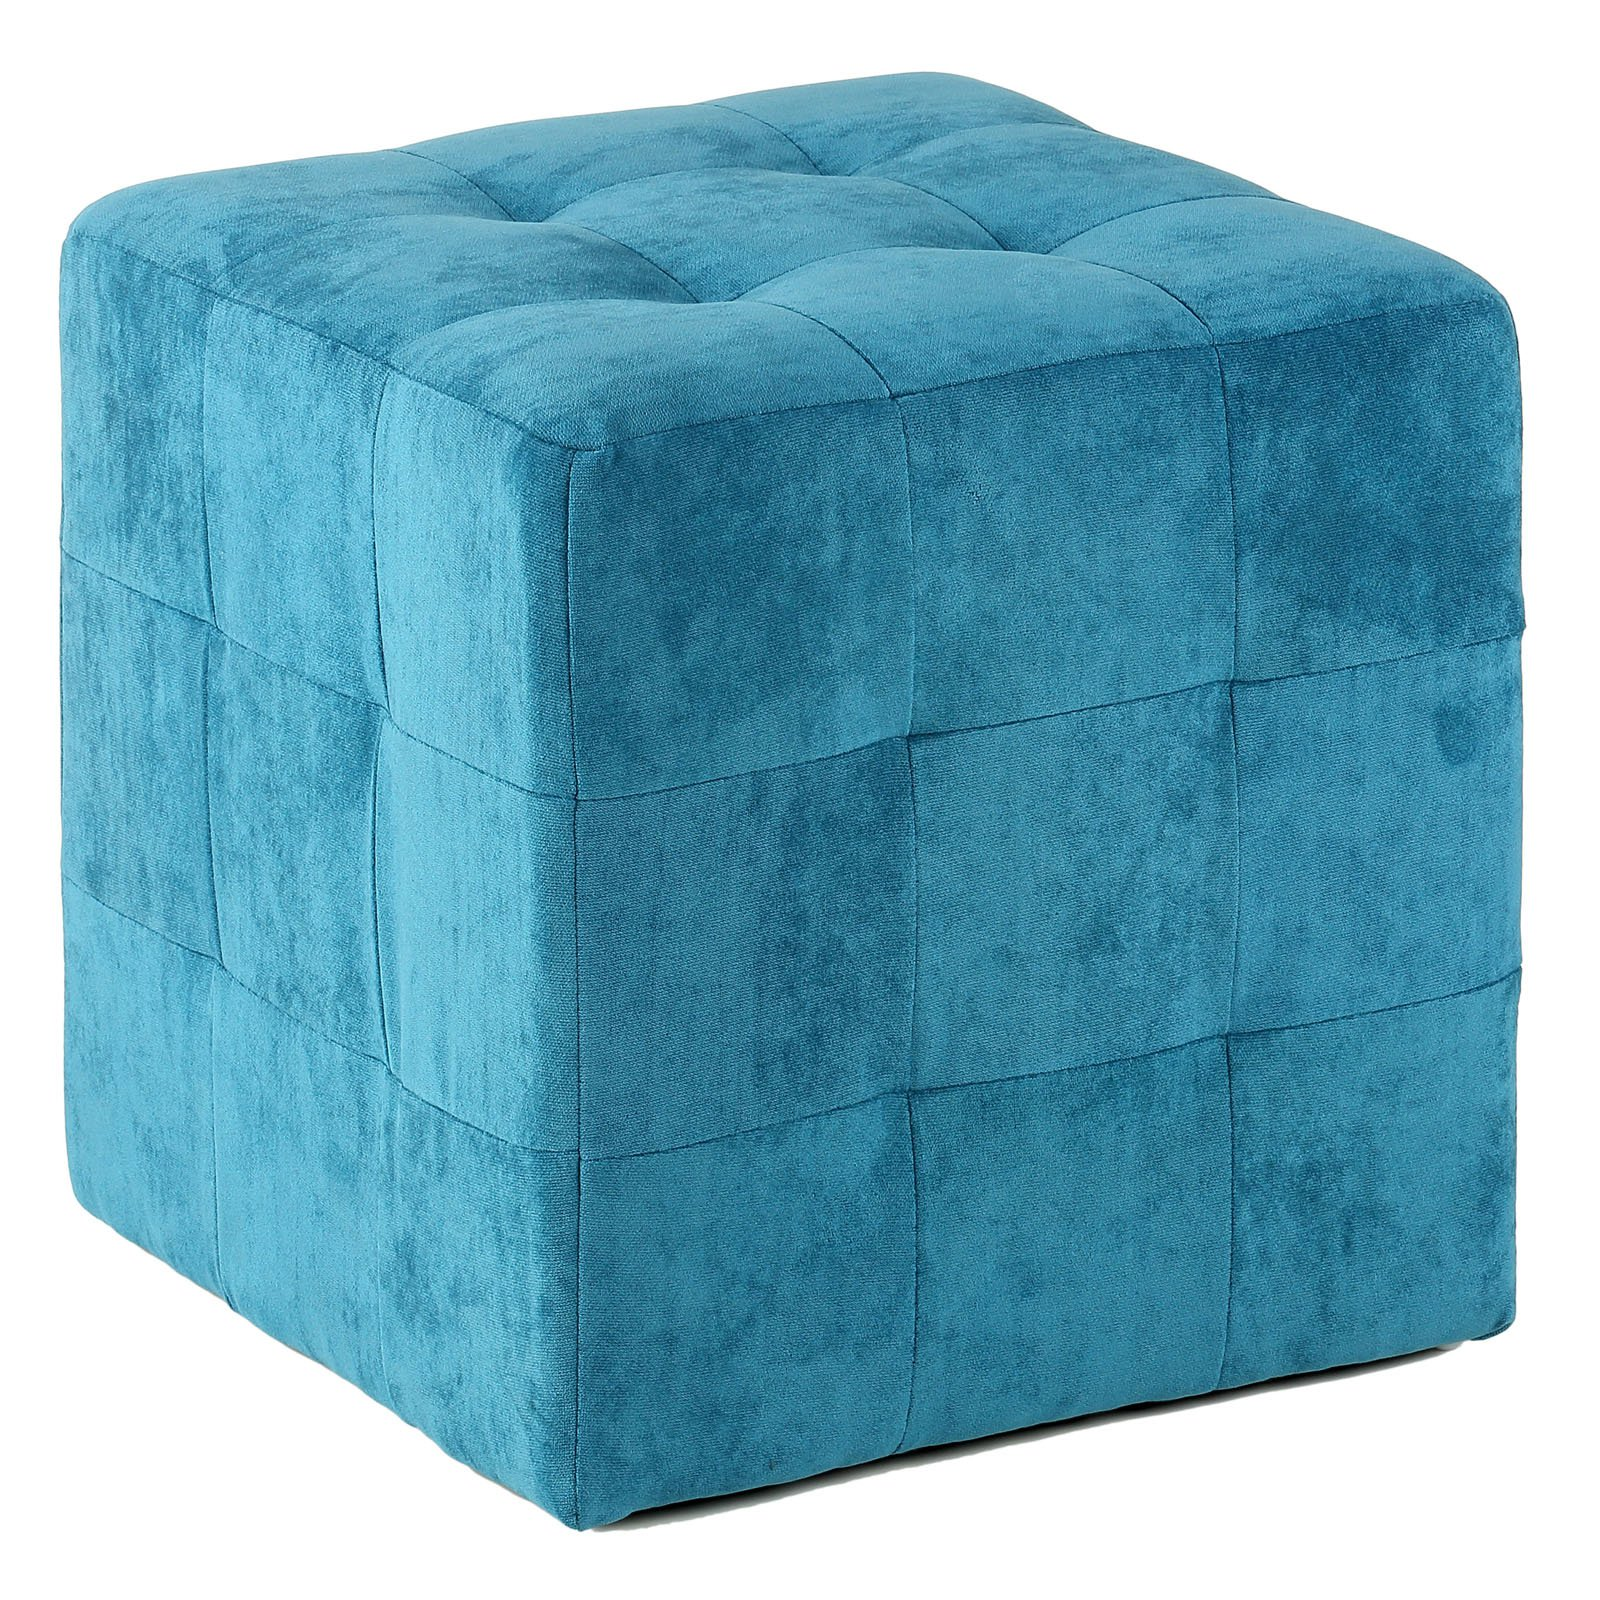 Terrific Cortesi Home Braque Tufted Cube Ottoman In 2019 Ottoman Bralicious Painted Fabric Chair Ideas Braliciousco